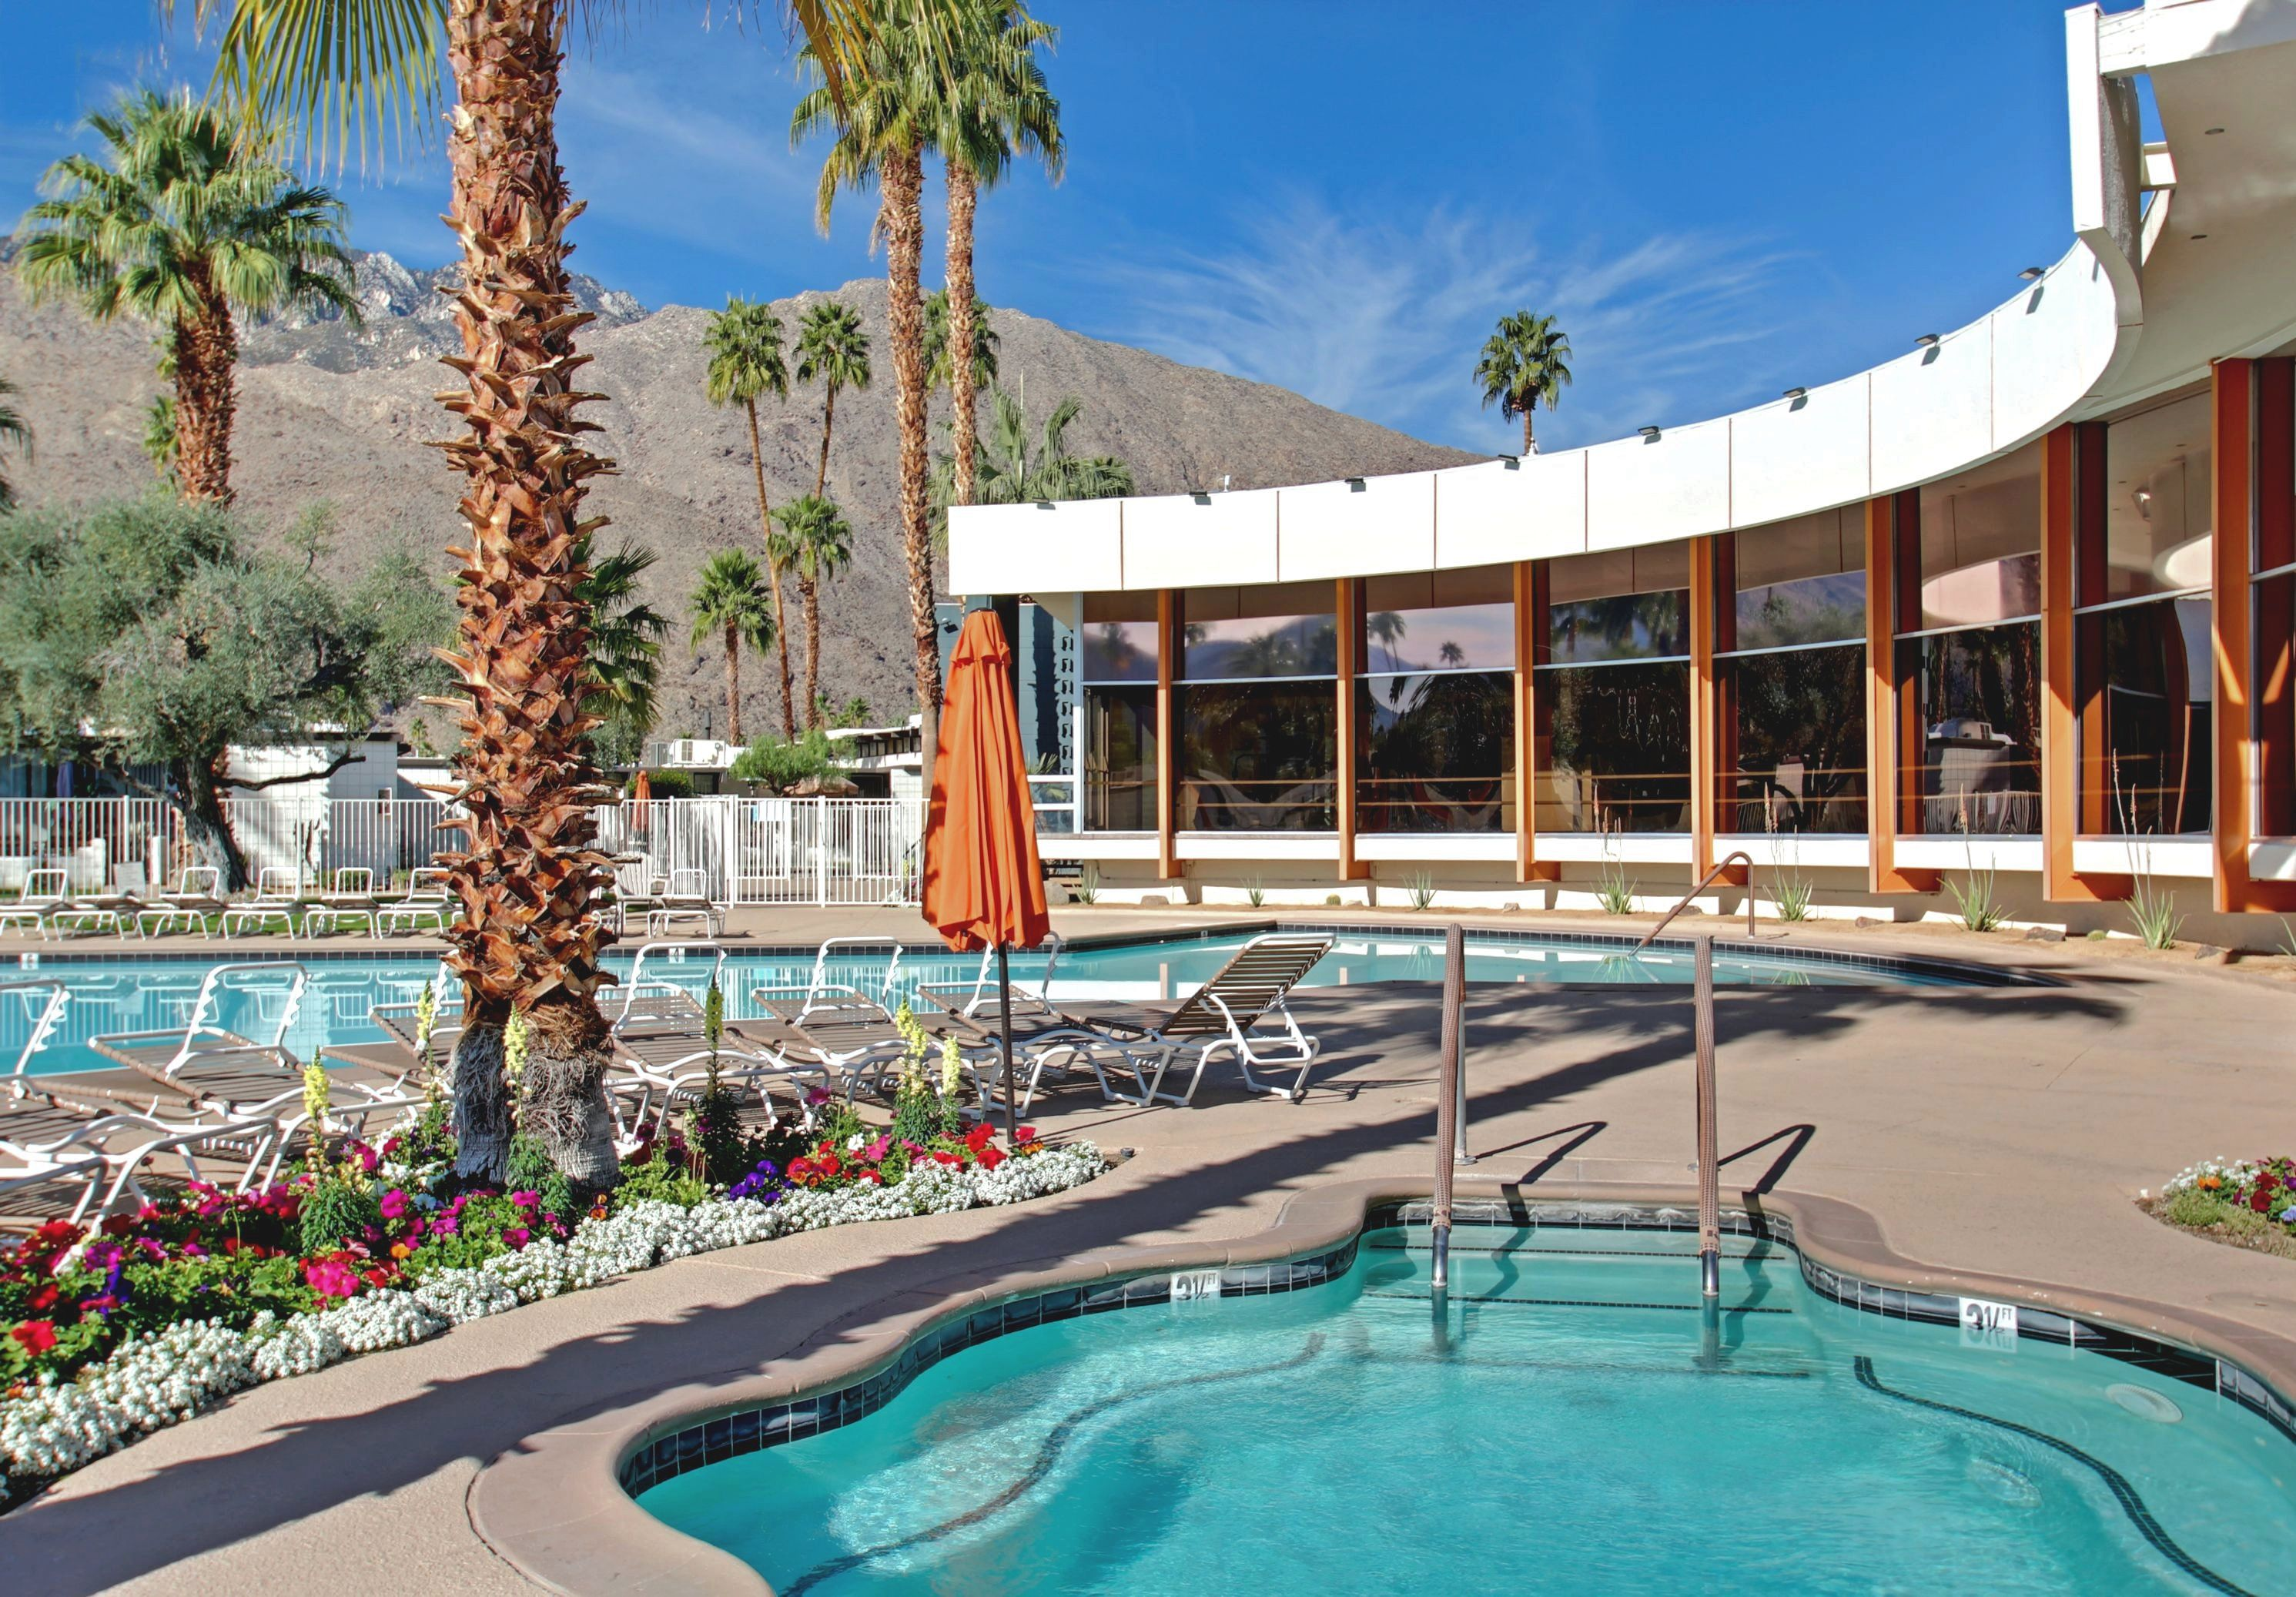 1111 E Palm Canyon Drive #316, Palm Springs - Ocotillo Lodge